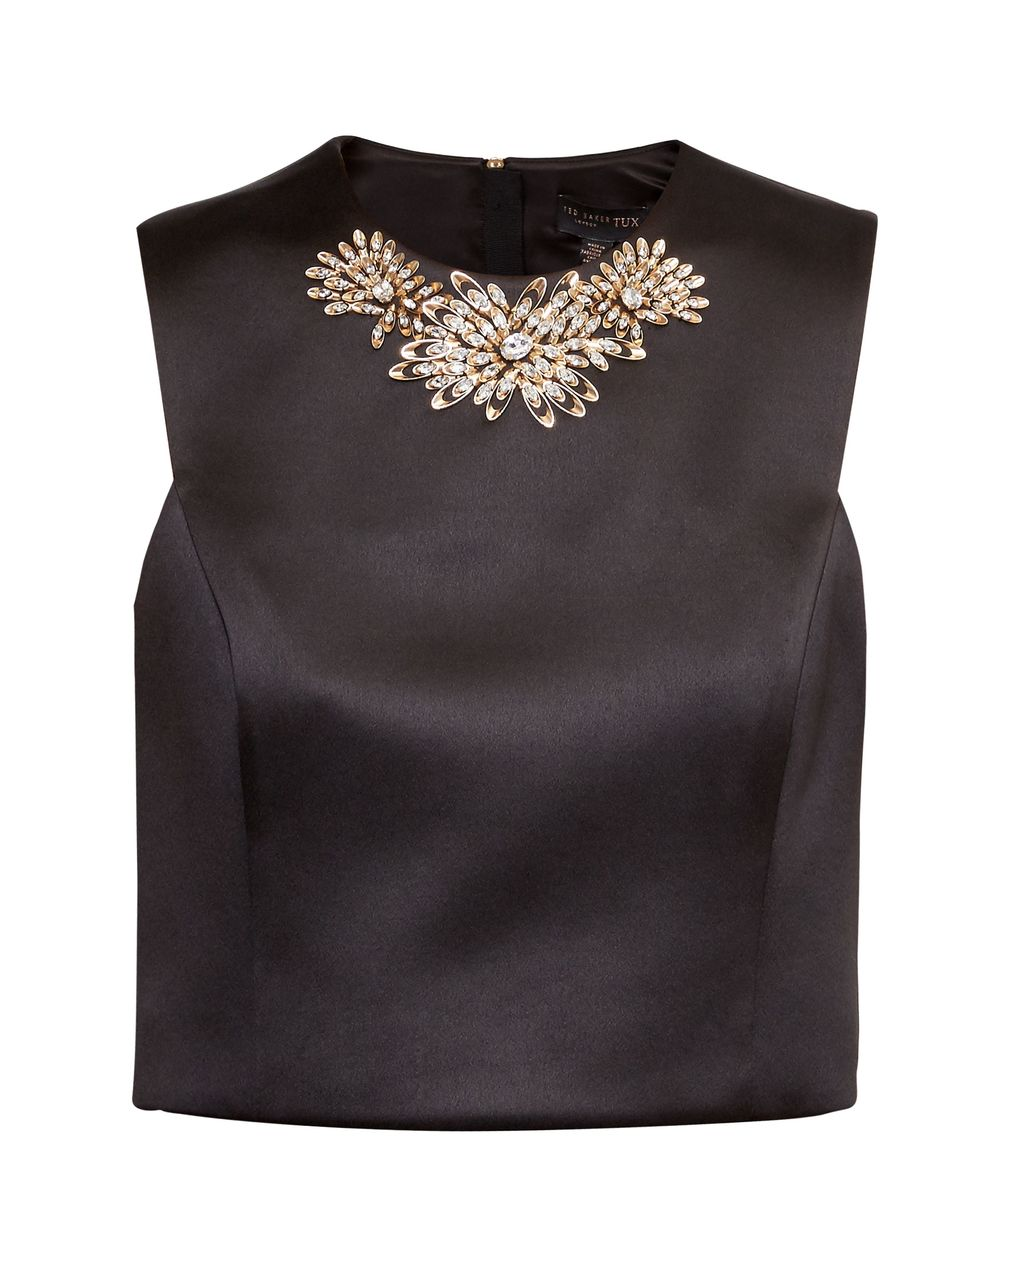 Jaby Embellished Cropped Top, Black - pattern: plain; sleeve style: sleeveless; length: cropped; predominant colour: black; occasions: evening; style: top; fibres: polyester/polyamide - 100%; fit: body skimming; neckline: crew; sleeve length: sleeveless; texture group: structured shiny - satin/tafetta/silk etc.; pattern type: fabric; embellishment: crystals/glass; season: s/s 2016; wardrobe: event; embellishment location: bust